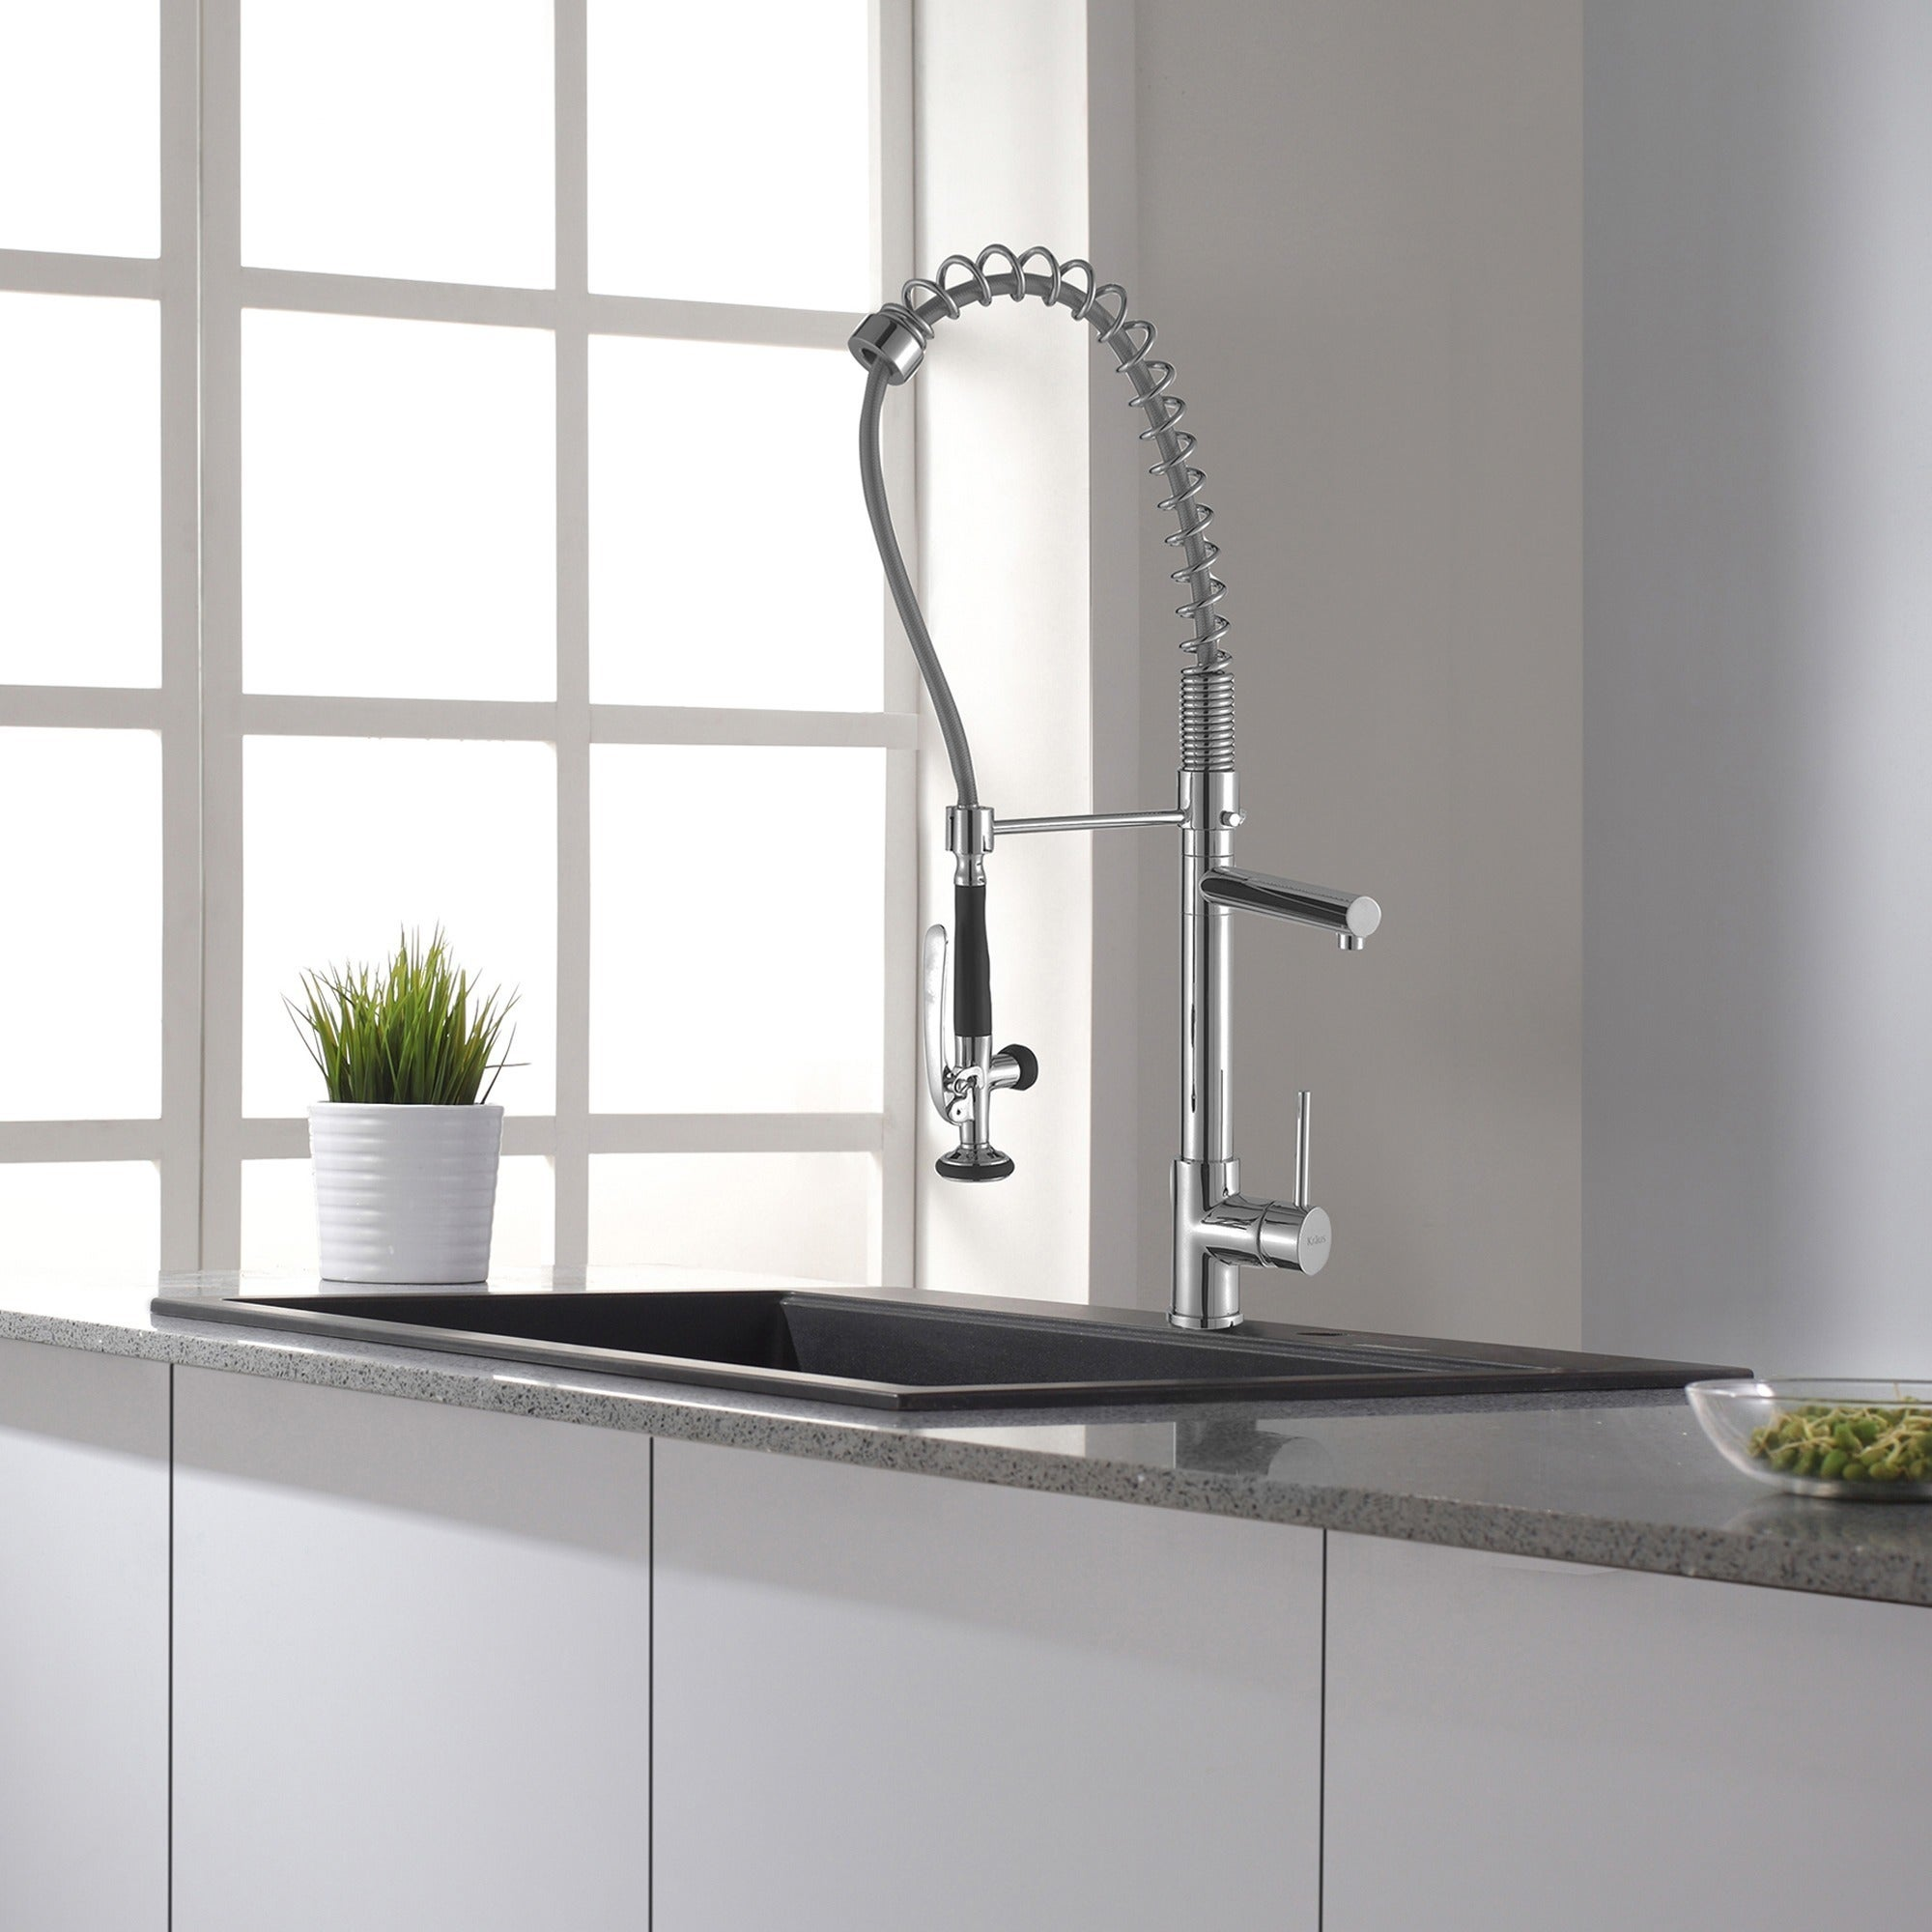 Superieur Shop KRAUS Commercial Style Single Handle Kitchen Faucet With Pull Down Pre  Rinse Sprayer   Free Shipping Today   Overstock.com   3233814